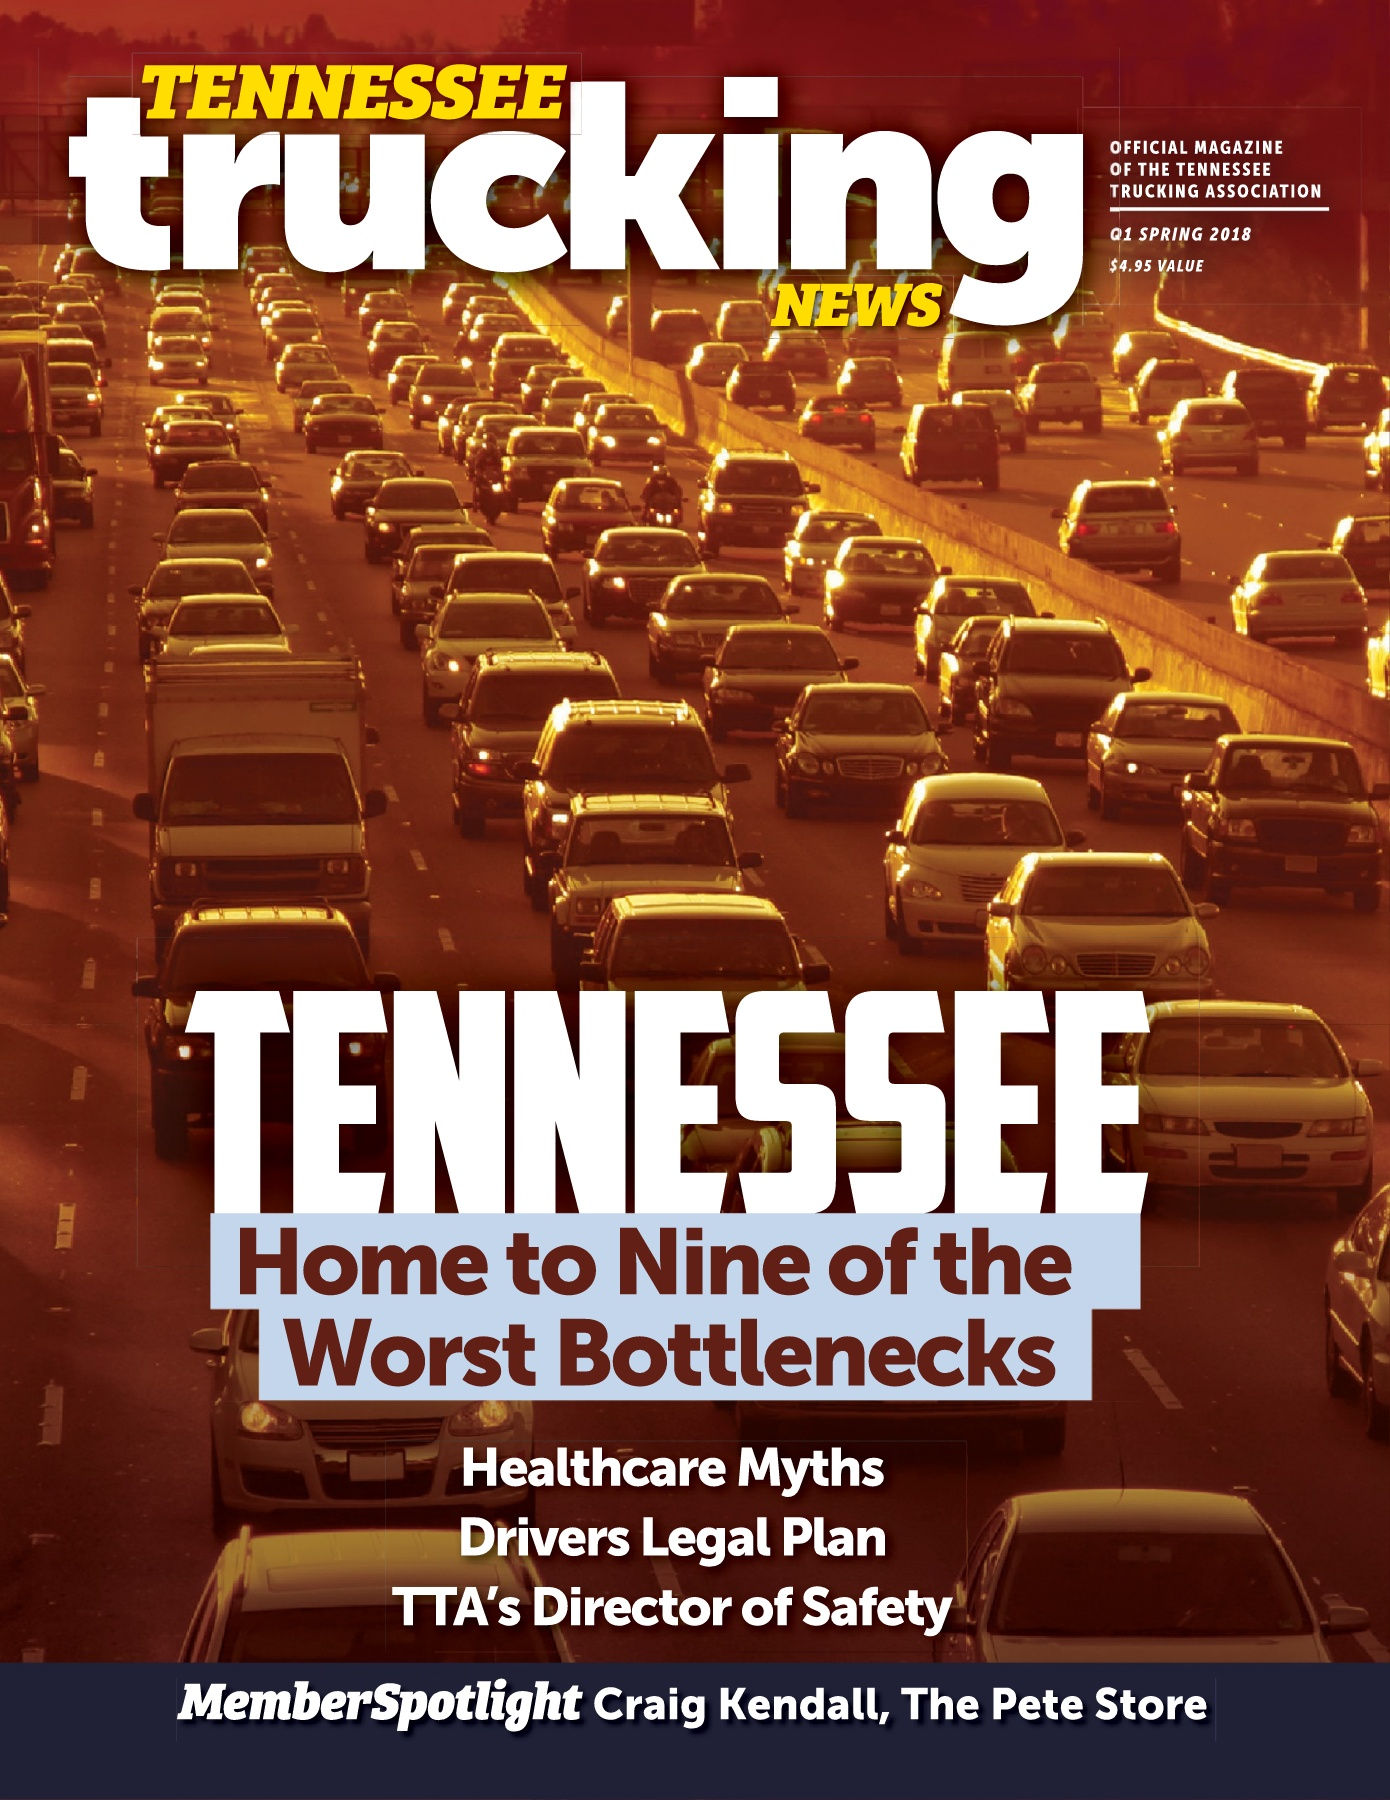 Tennessee Trucking News Q1 Spring 2018 -- Bottlenecks Pages